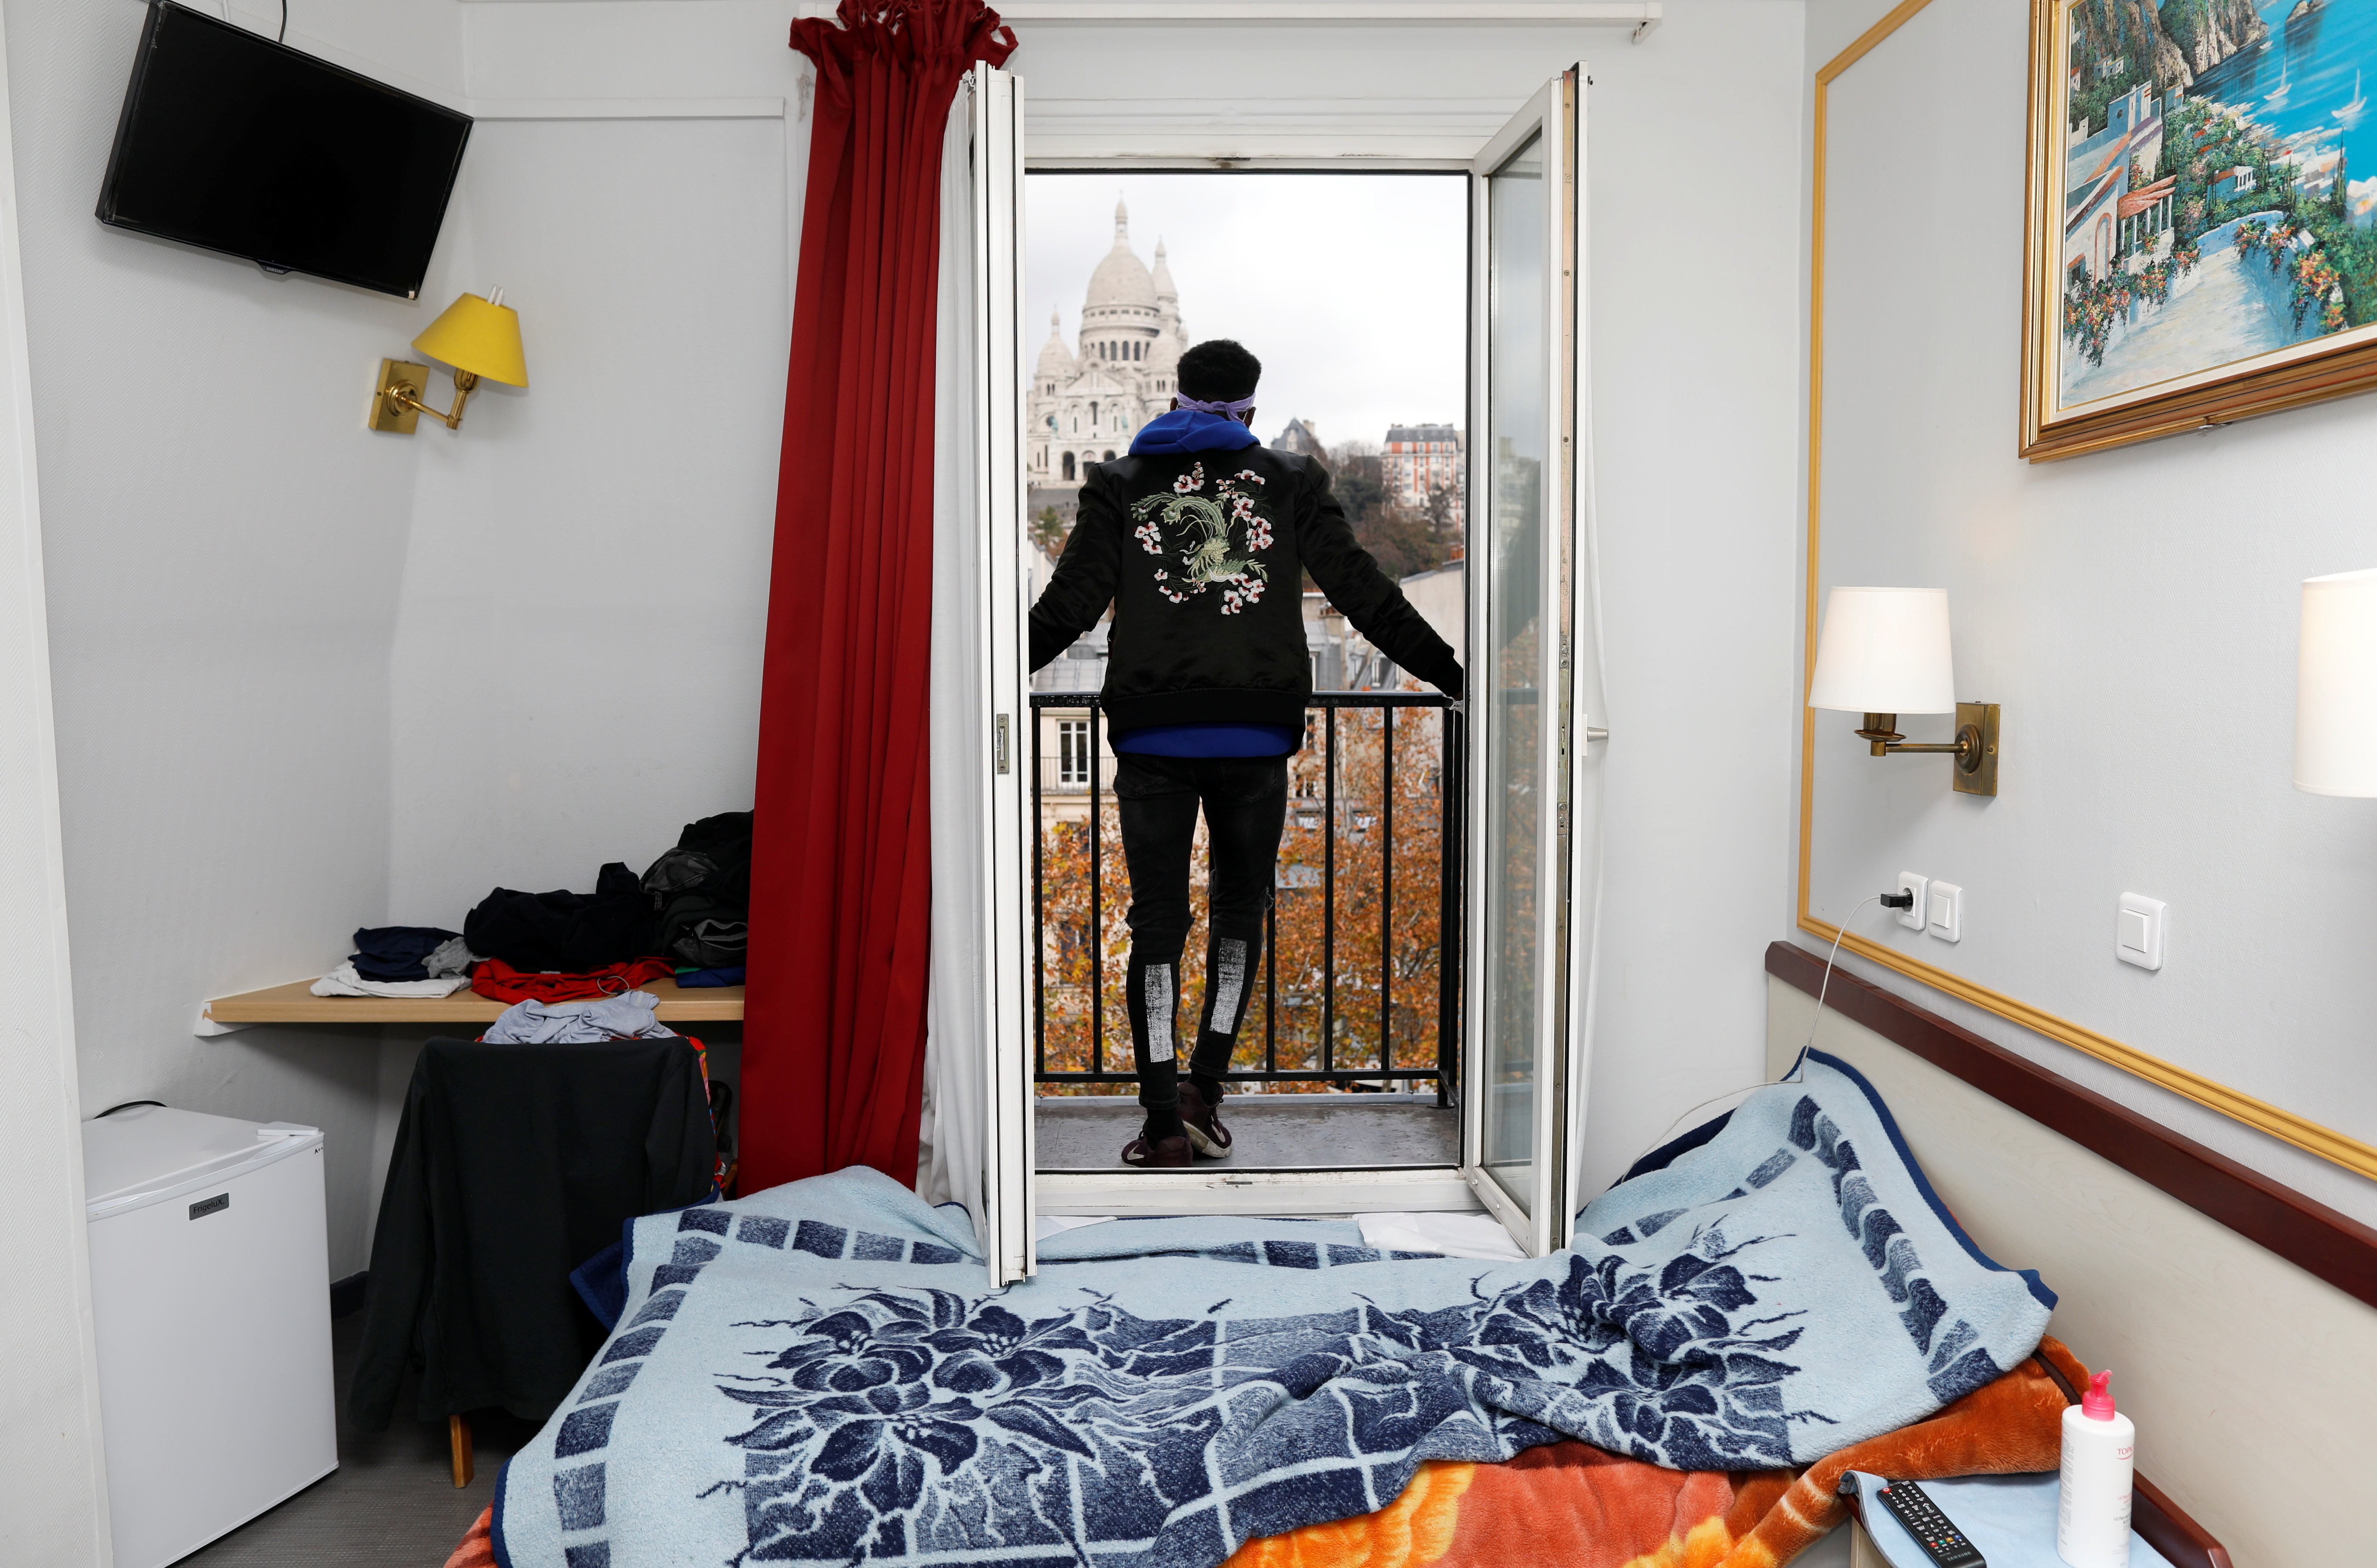 Asylum-seeker Ibrahim looks at the Sacre Coeur Cathedral from his room at the Hotel Avenir Montmartre in Paris, France, December 2, 2020. The hotel, deserted by tourists due to COVID-19 travel bans opens its 42 rooms to the city's homeless for 12 months with the help of French charity association Emmaus Solidarite. Picture taken December 2, 2020.  REUTERS/Charles Platiau - RC2MFK9CW7TY